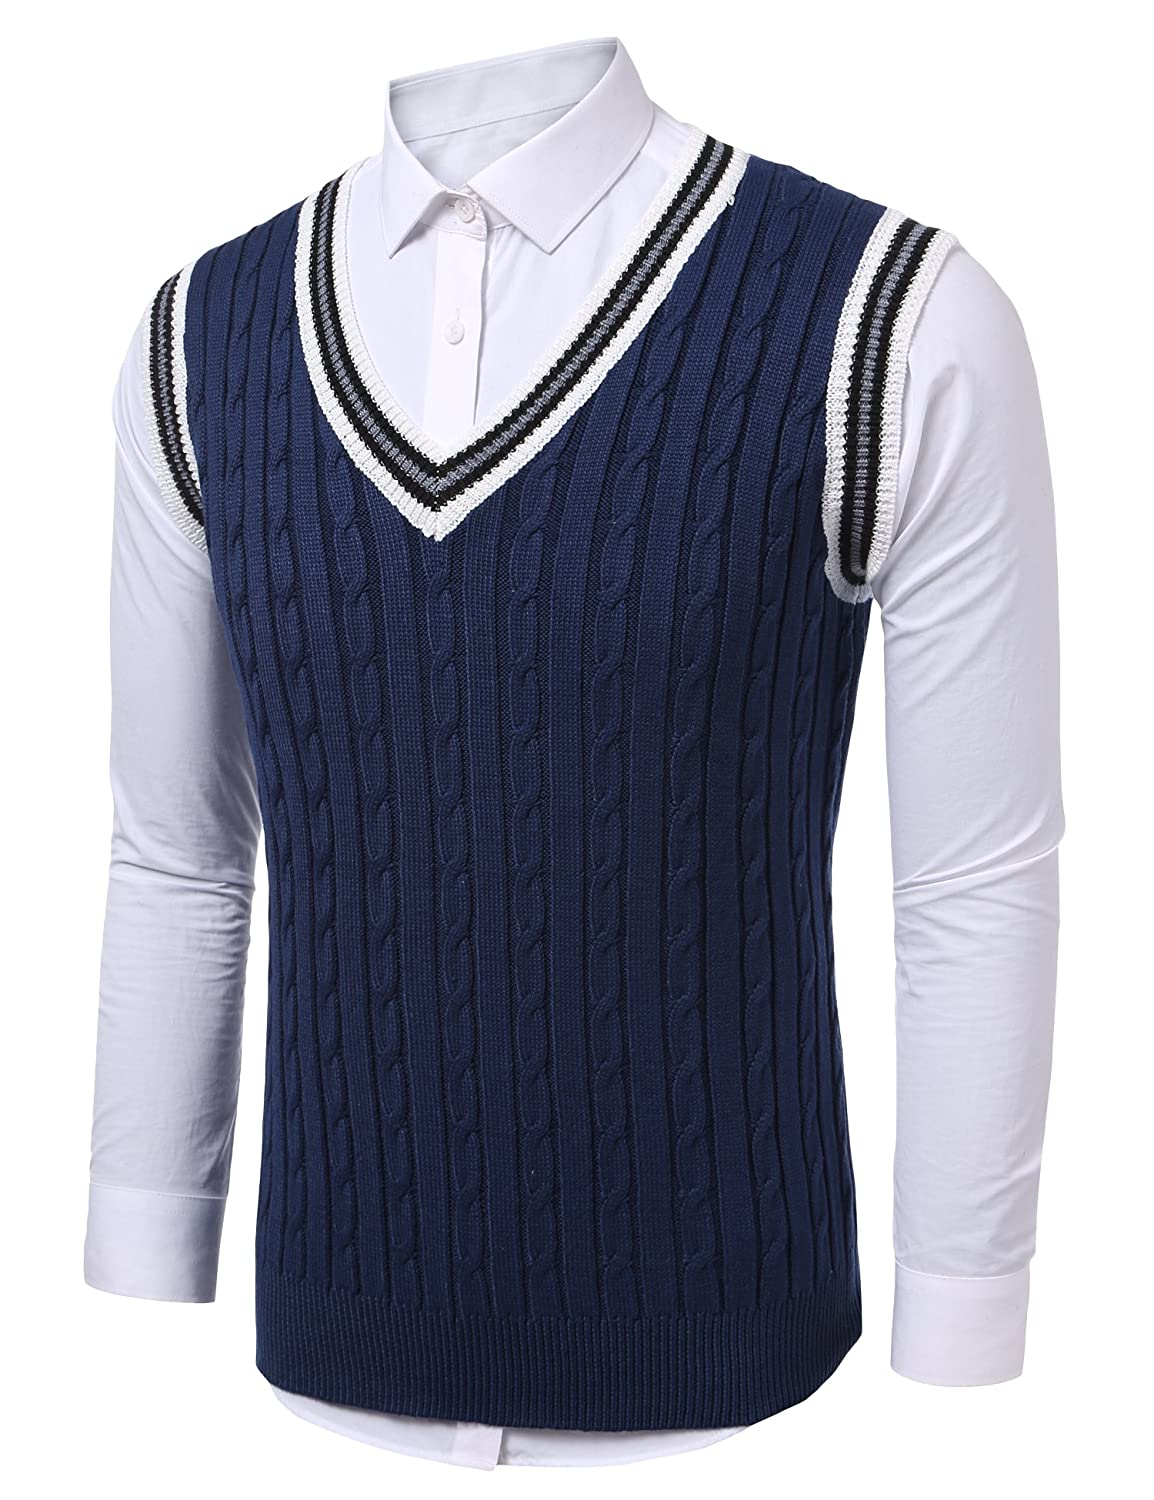 1920s Style Mens Vests Coofandy Mens Casual Knitted Sweater Slim Fit Pullover Cable Sweater Links-Vest $27.99 AT vintagedancer.com